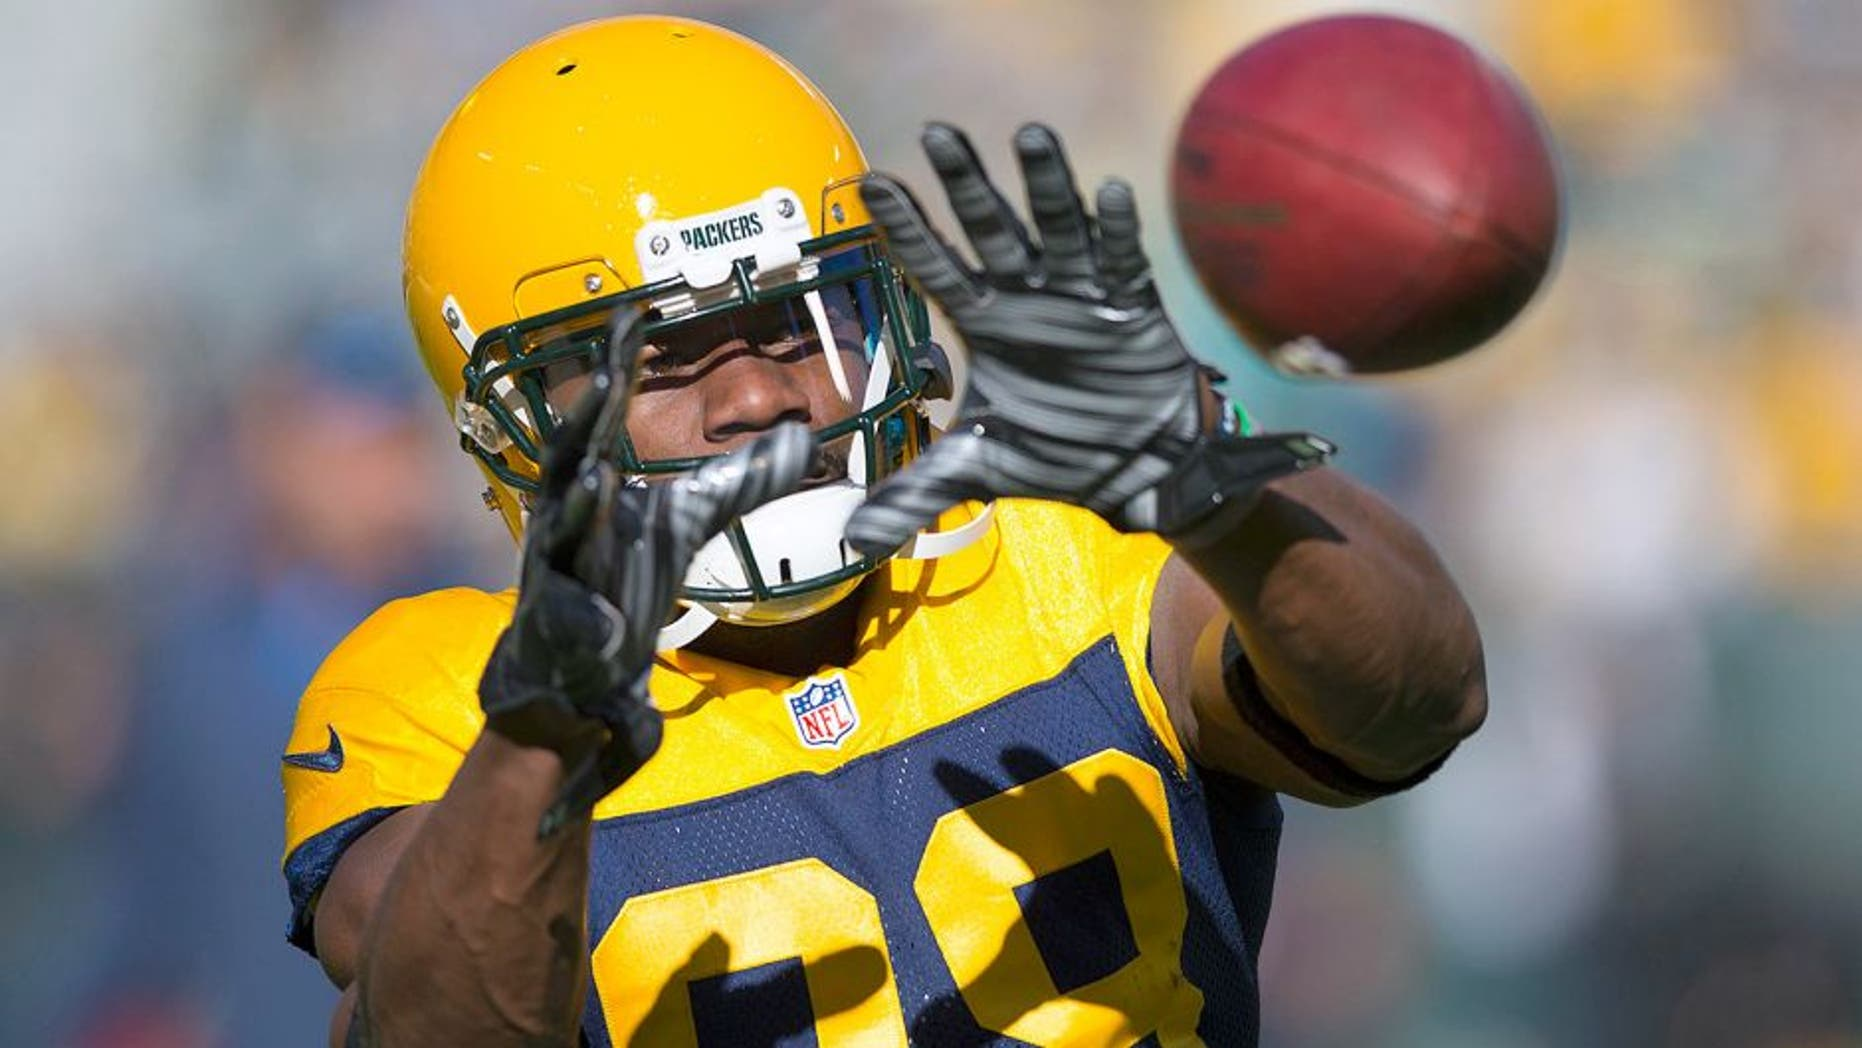 Oct 18, 2015; Green Bay, WI, USA; Green Bay Packers wide receiver Ty Montgomery (88) catches a pass during warmups prior to the game against the San Diego Chargers at Lambeau Field. Mandatory Credit: Jeff Hanisch-USA TODAY Sports